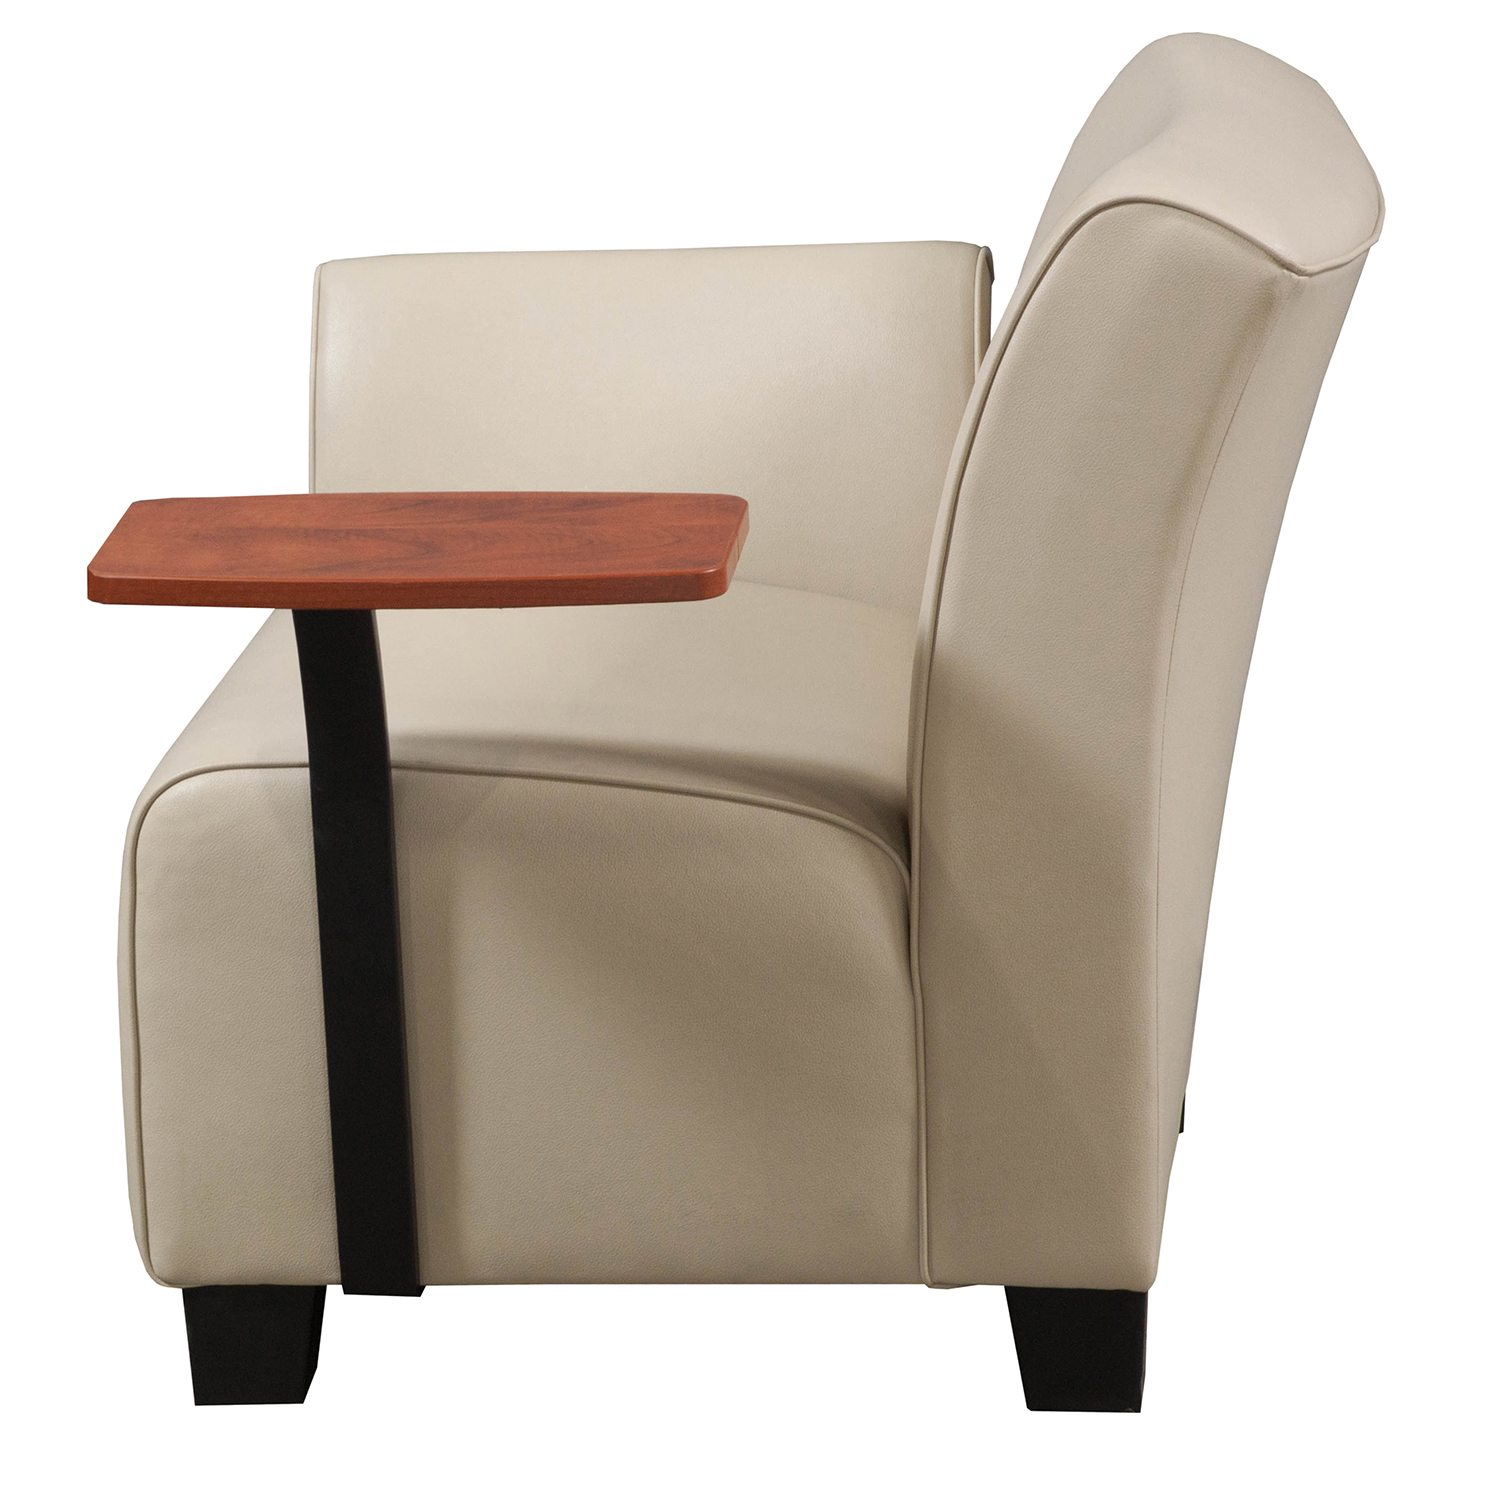 Steelcase Jenny Left Tablet Lounge Chair   Side